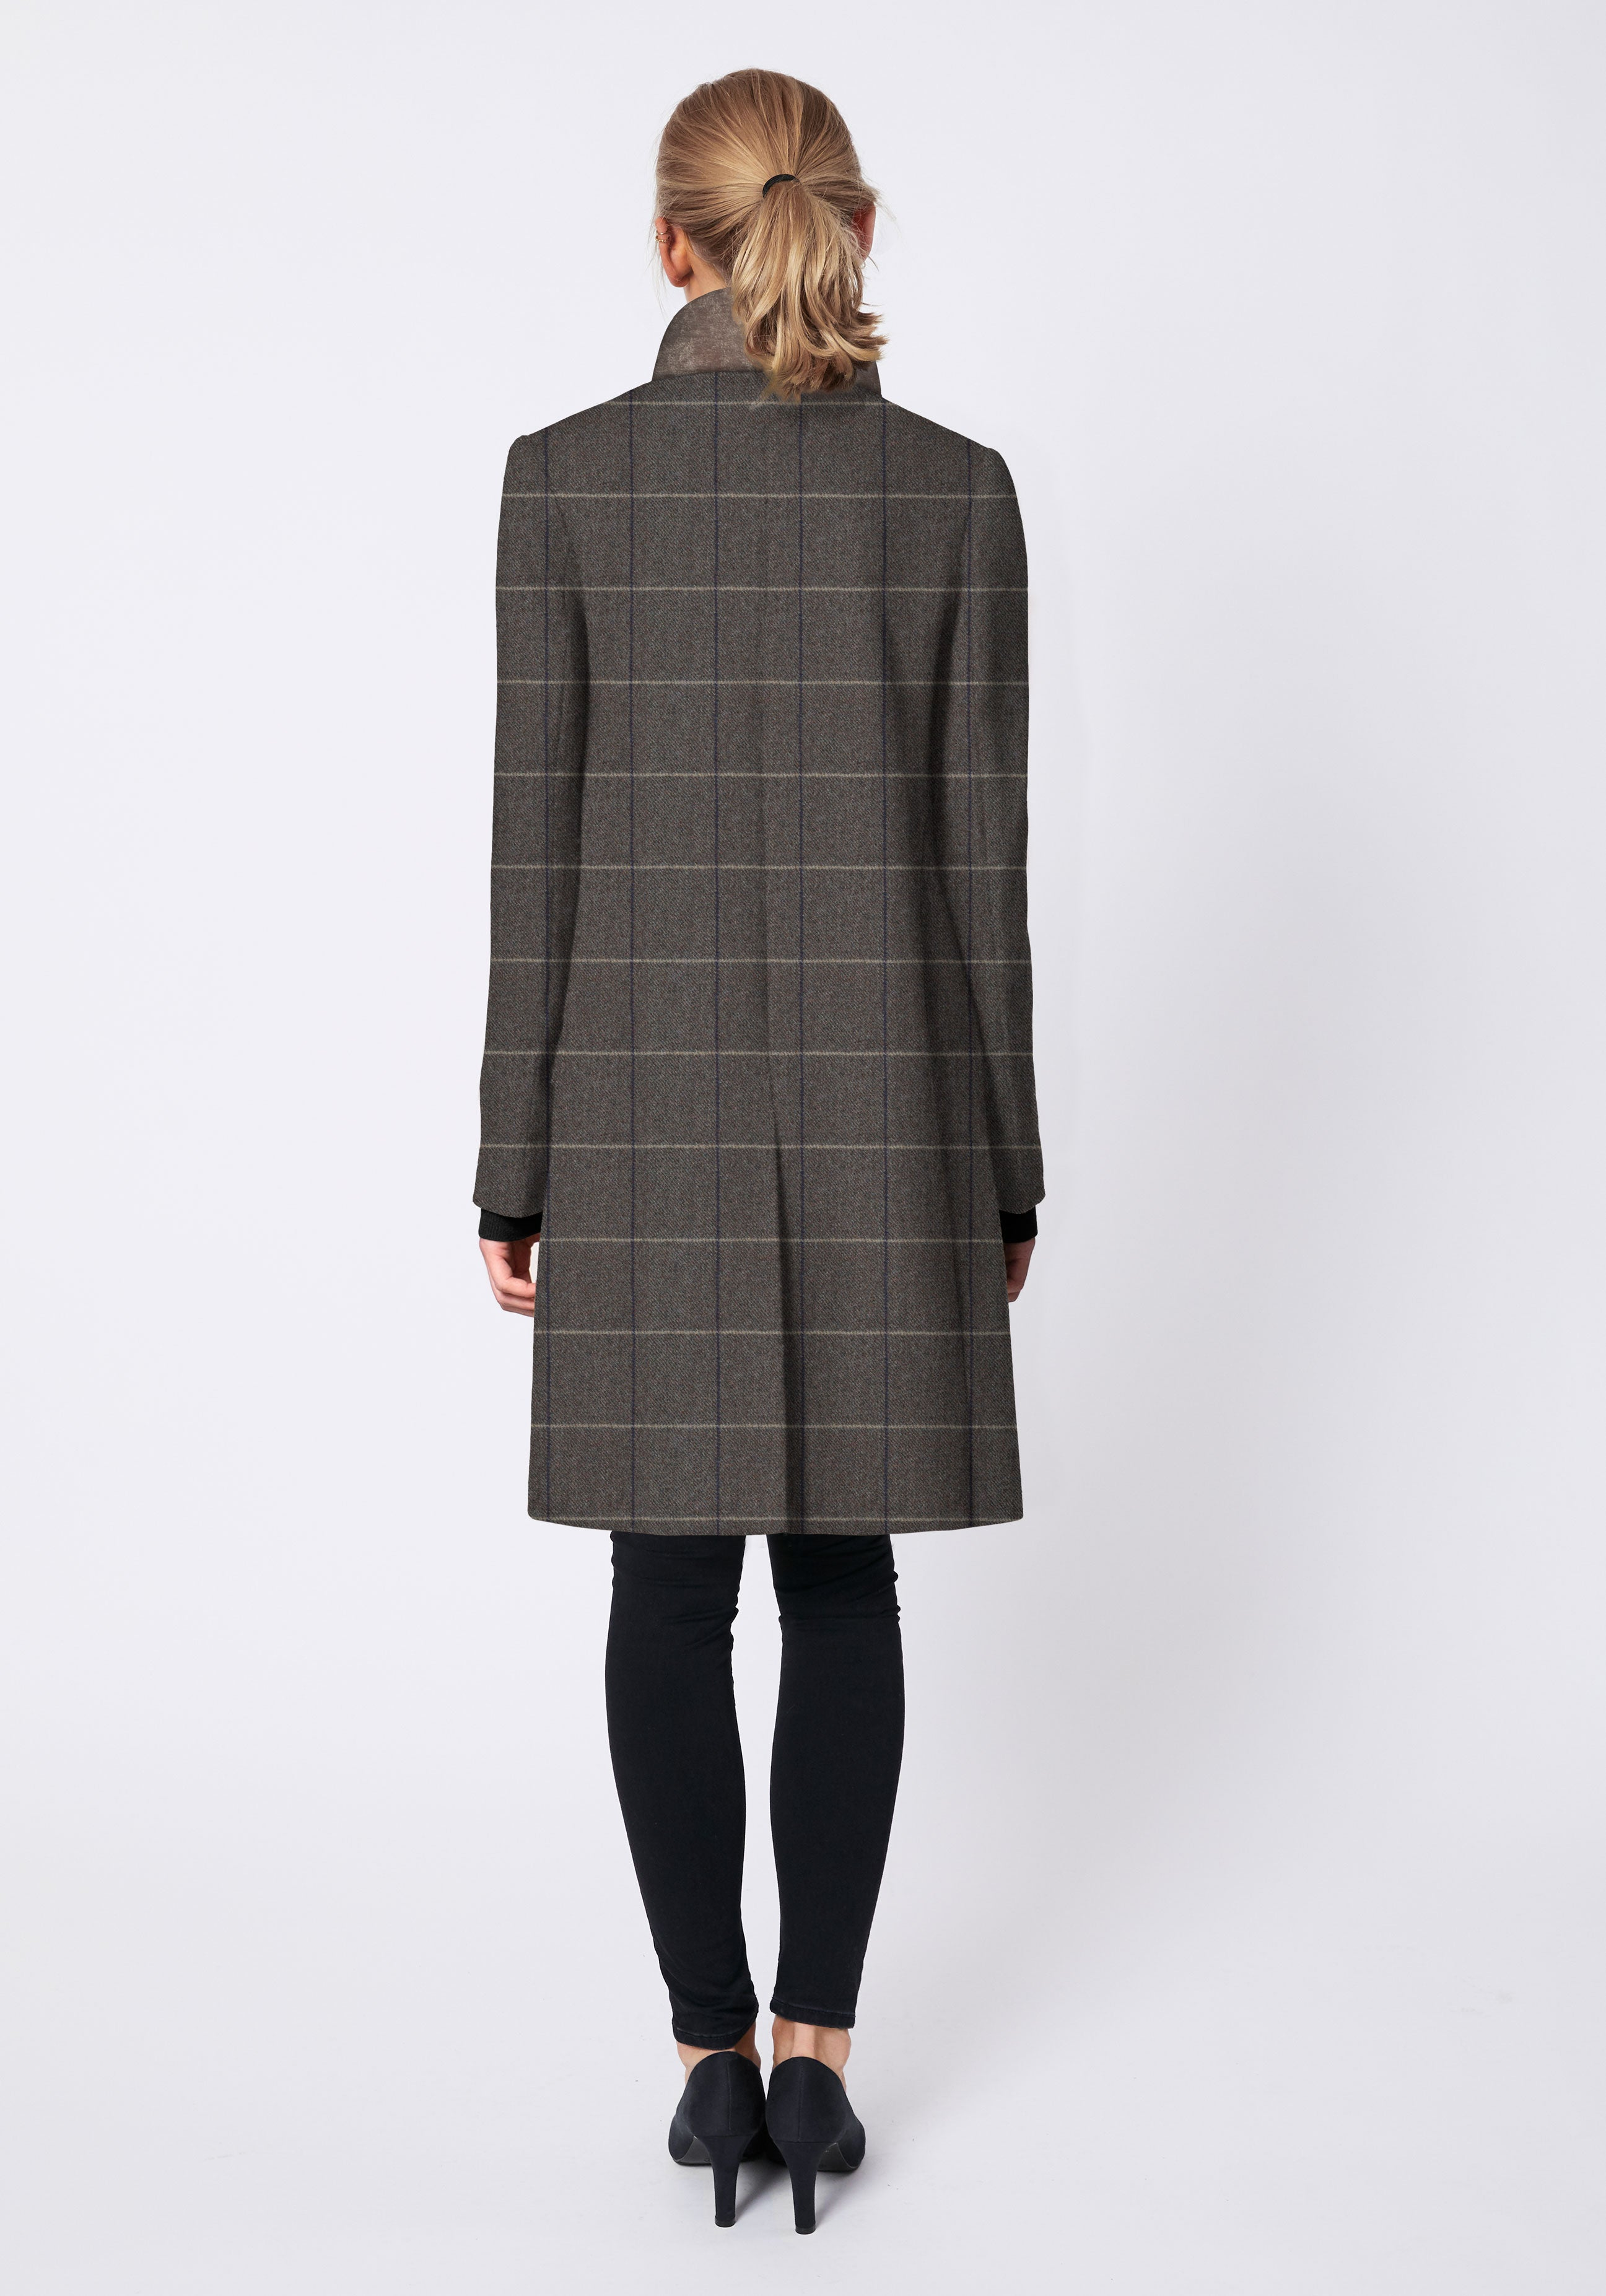 Nelson Coat in Taupe with Cream Check